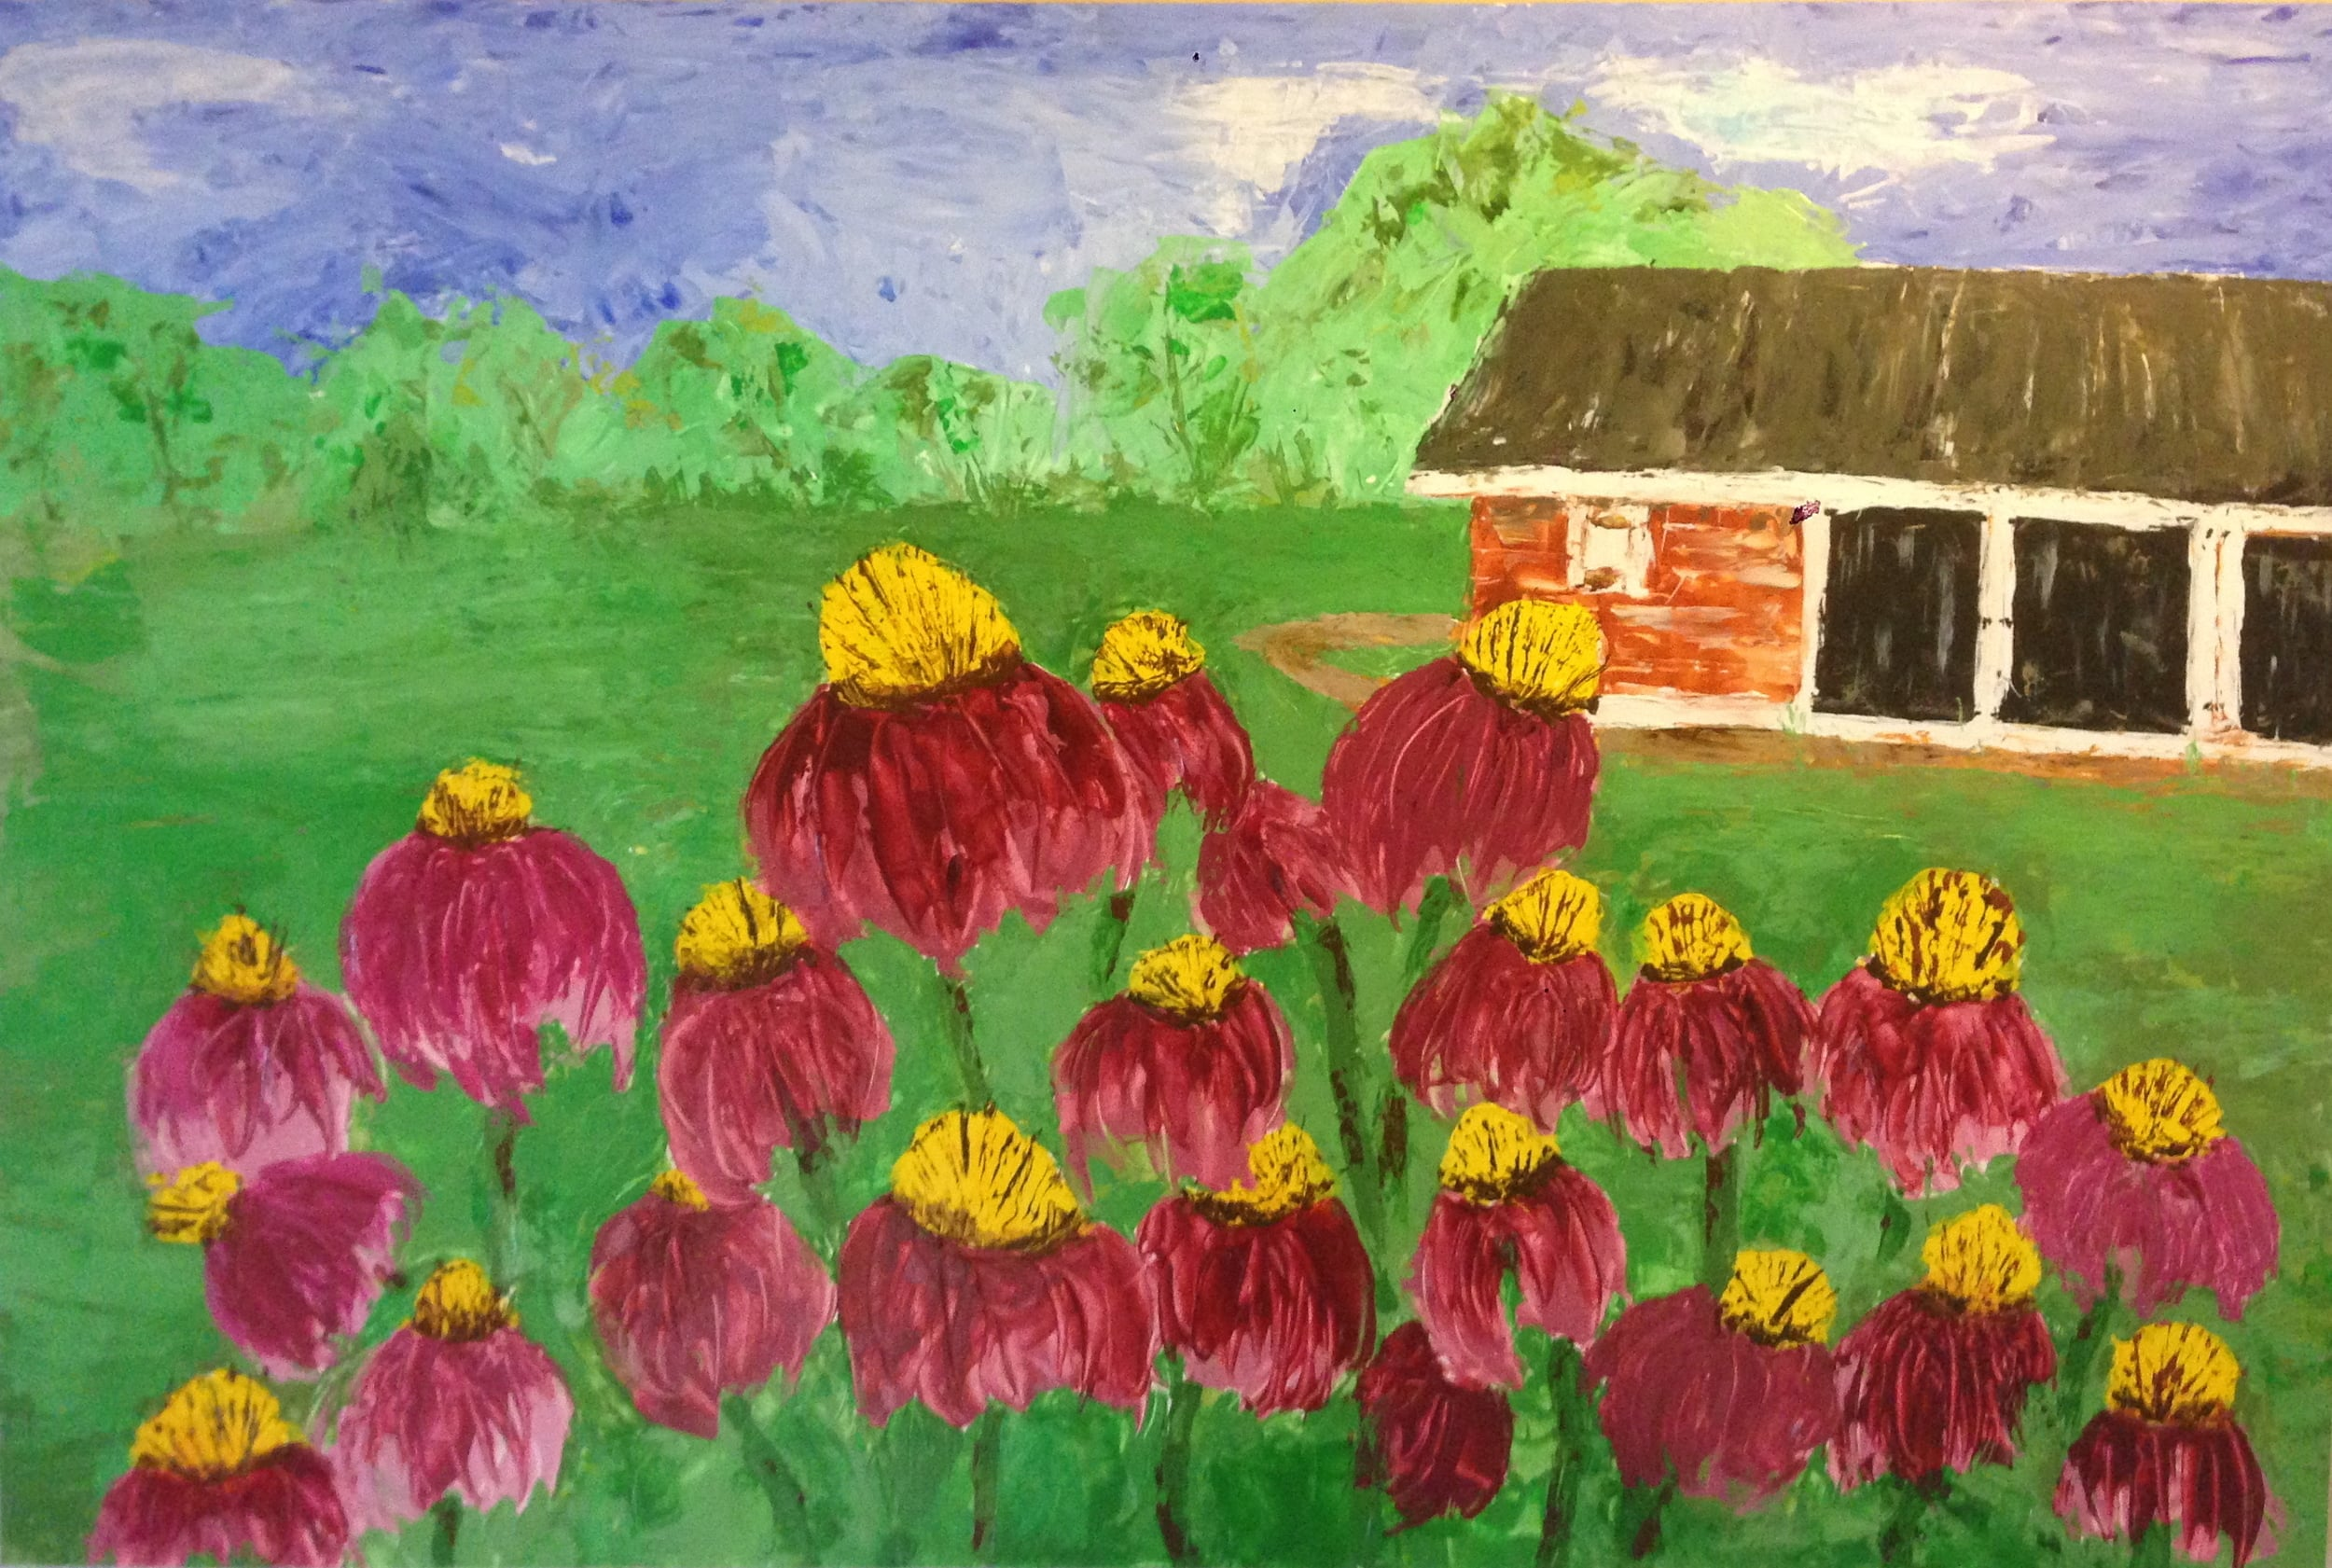 From Behind The Barn by Allene Riley Kussin. Summer 2015. Acrylic on canvas board.